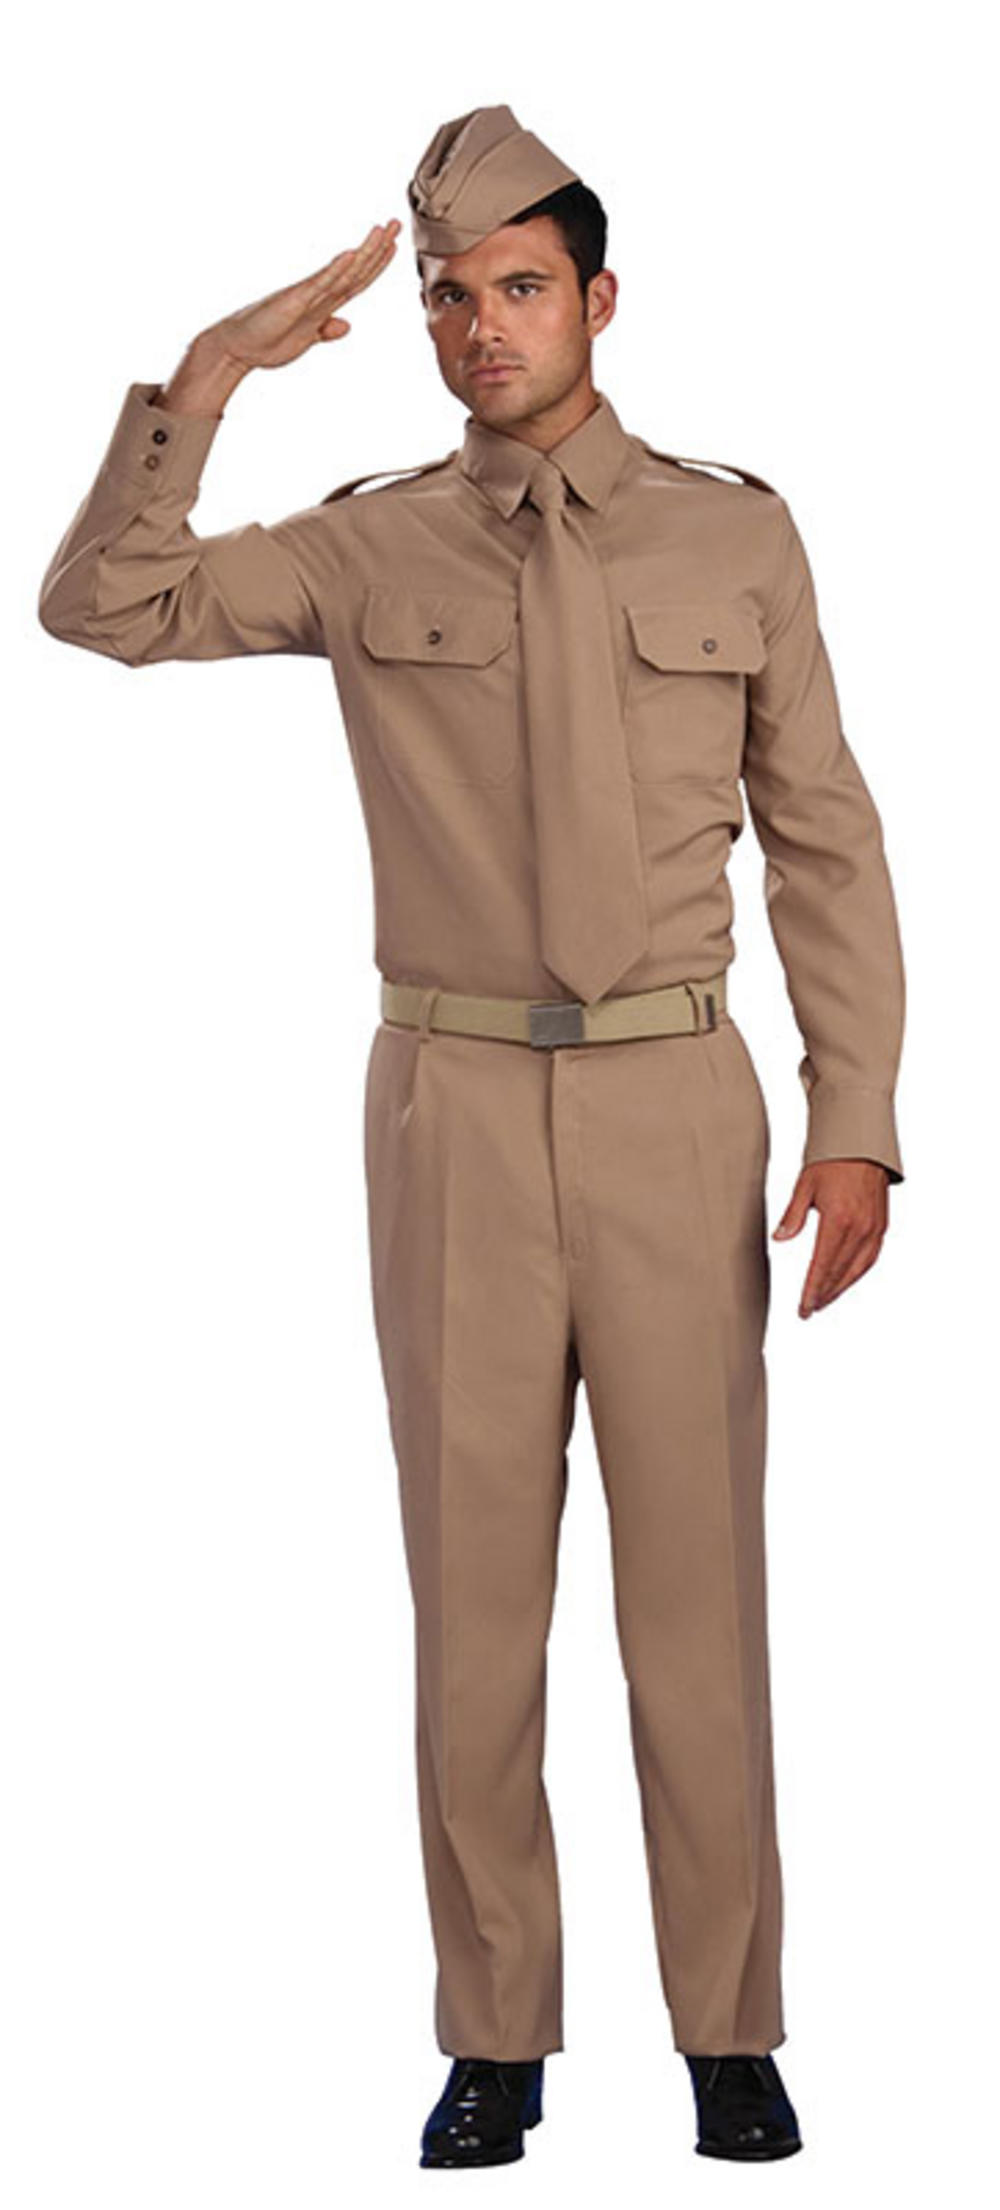 WW2 Private Solider Costume